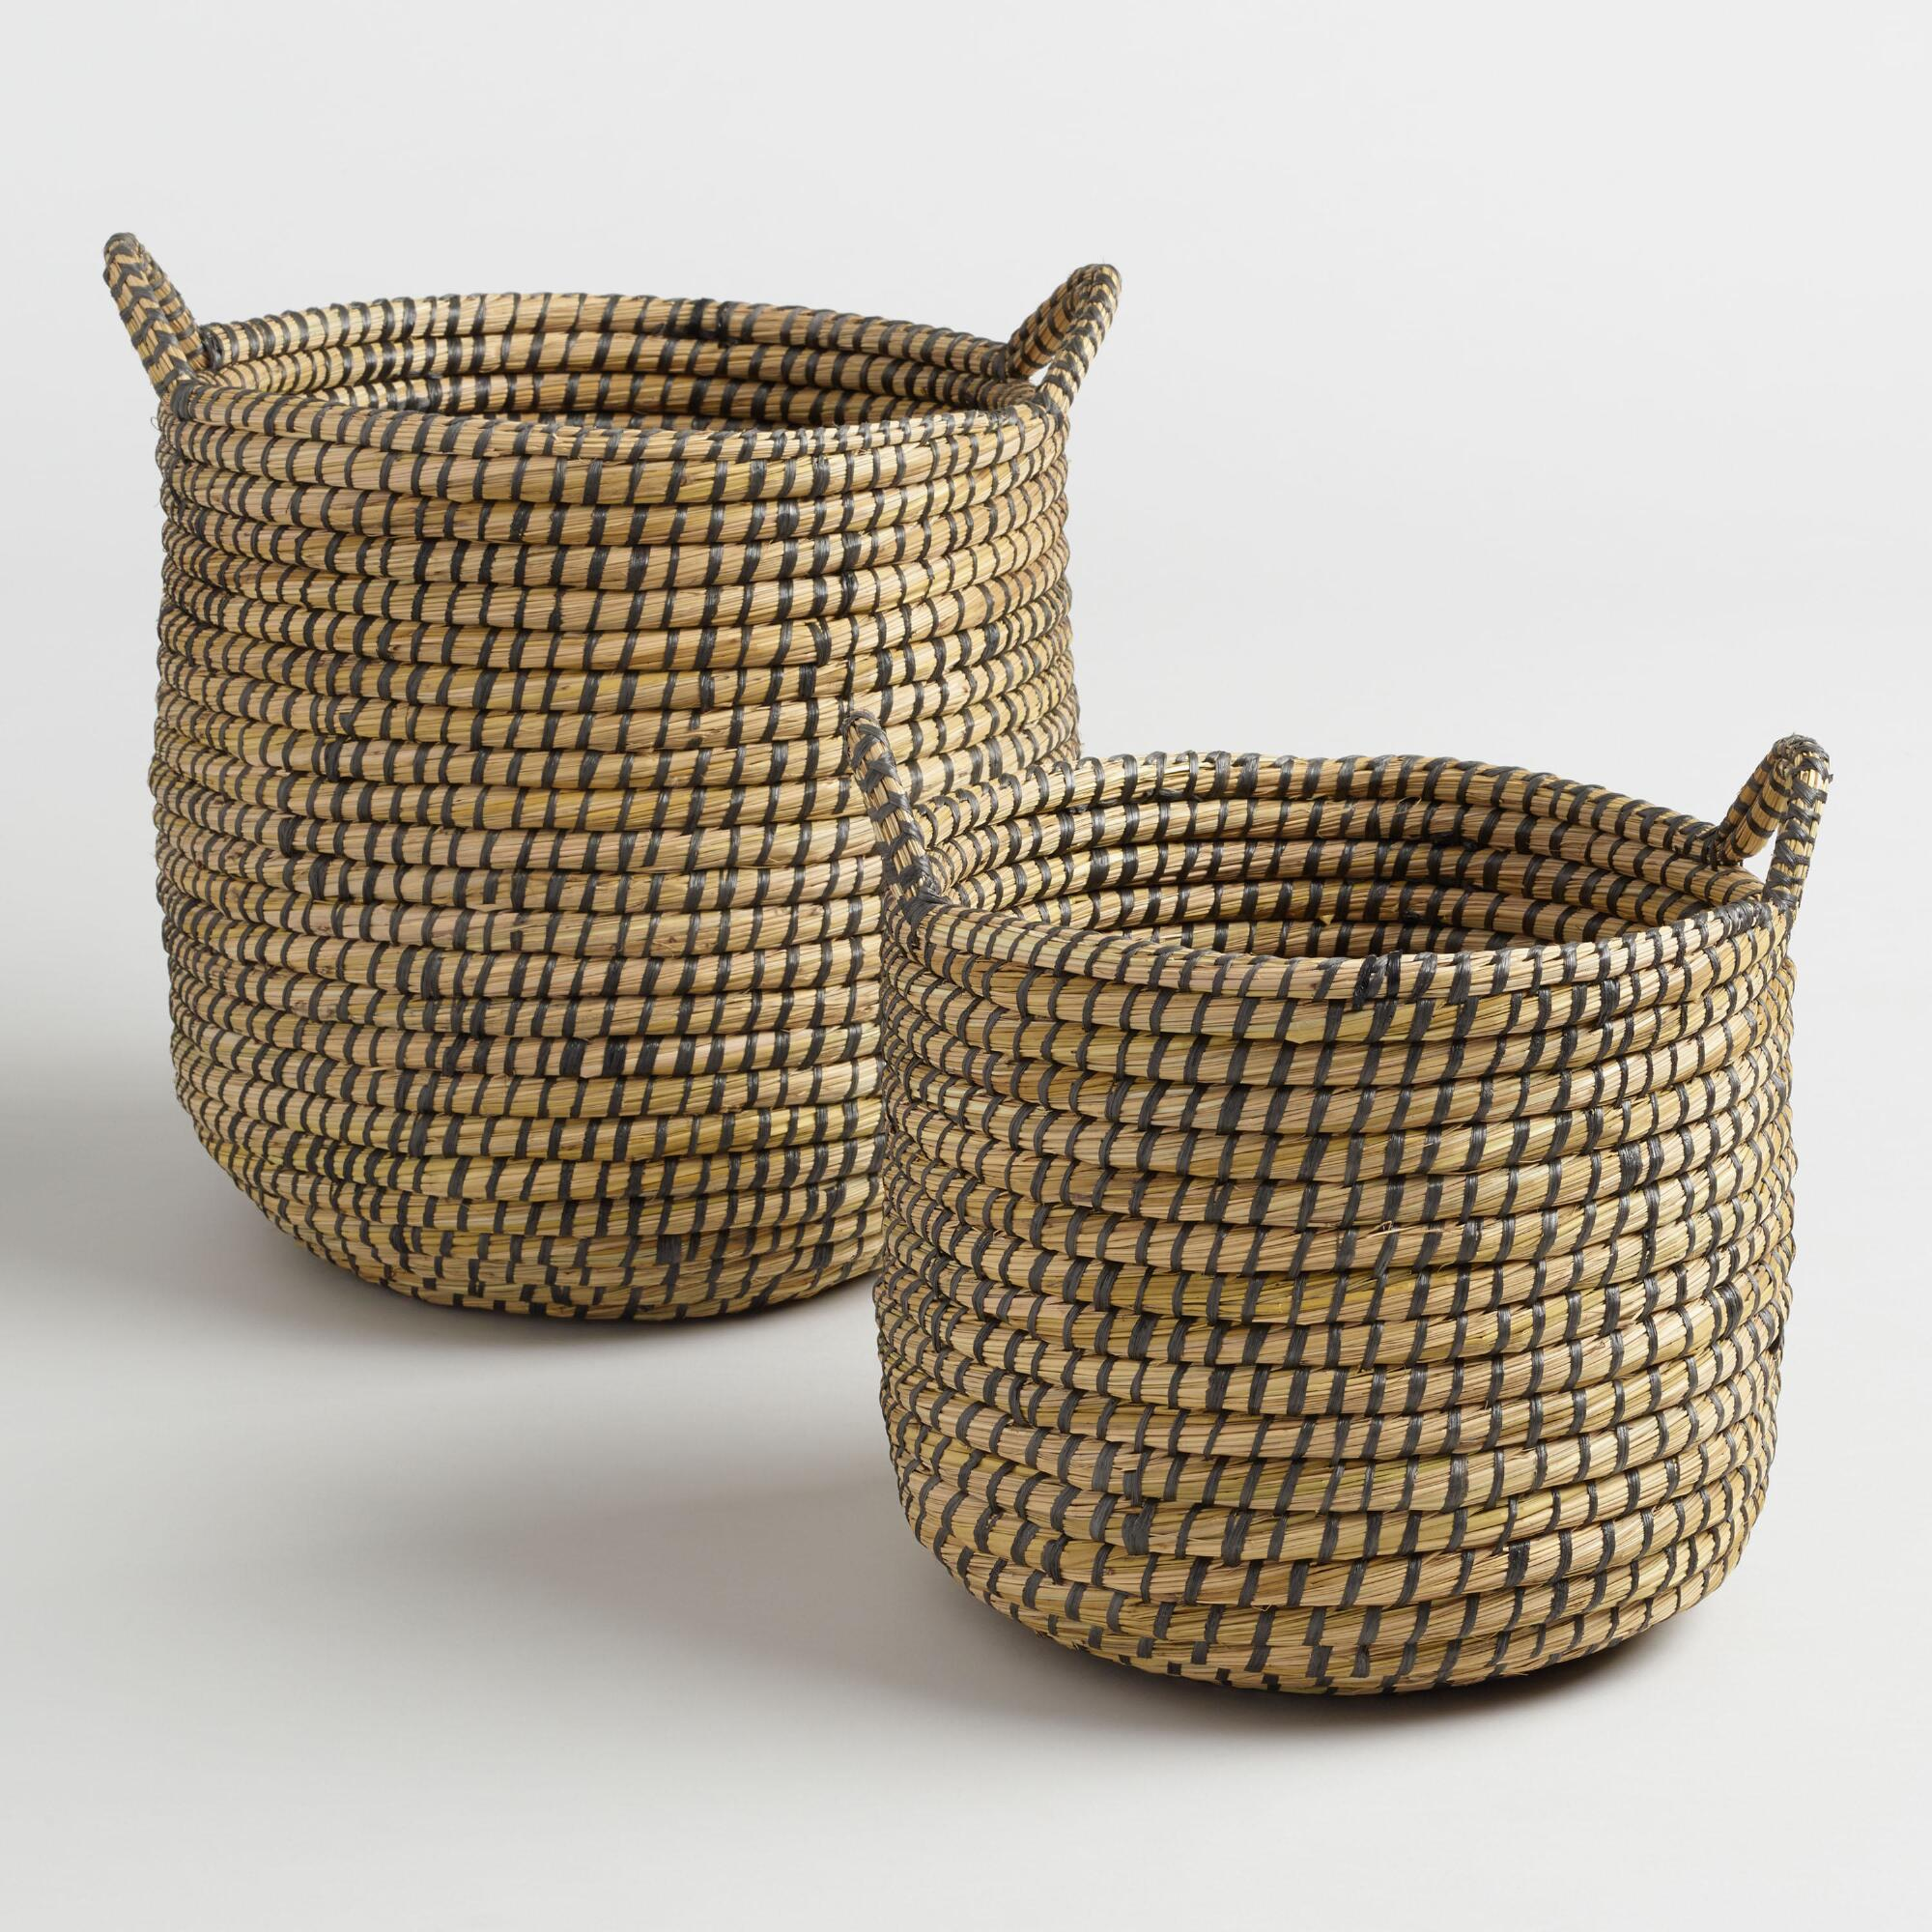 Espresso and Natural Seagrass Paige Tote Baskets - Small by World Market Small